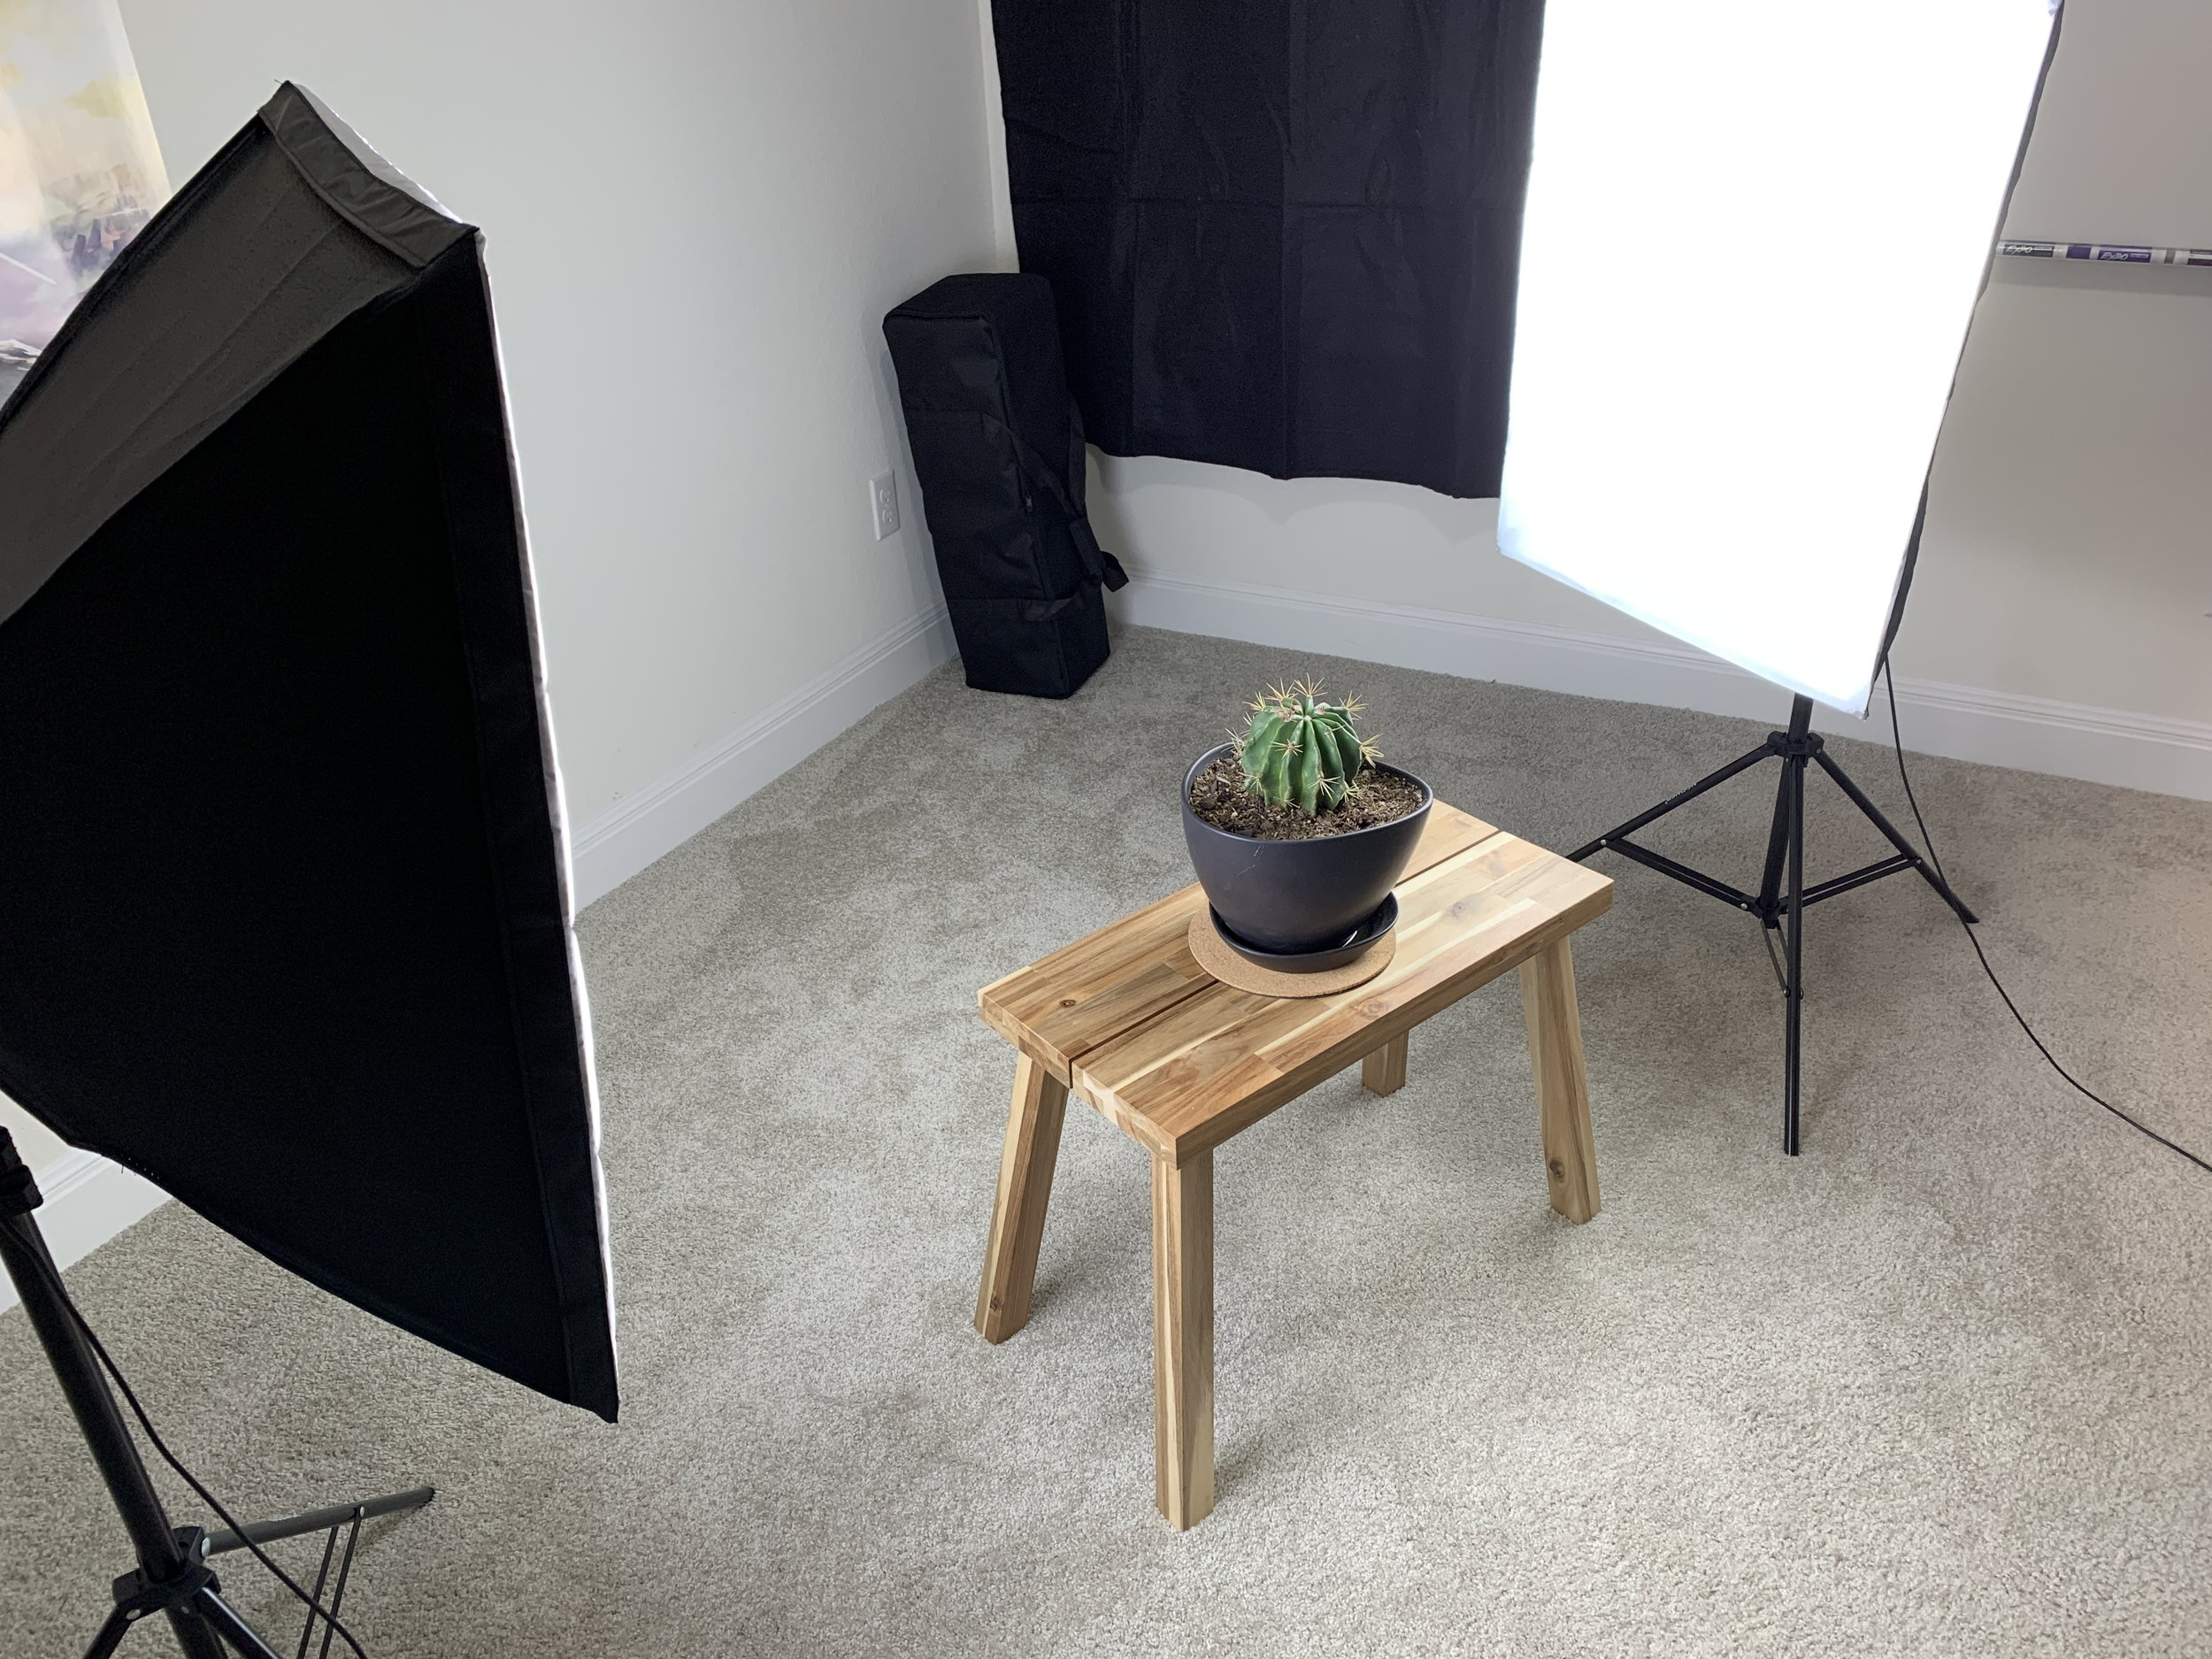 My photogrammetry lightbox setup